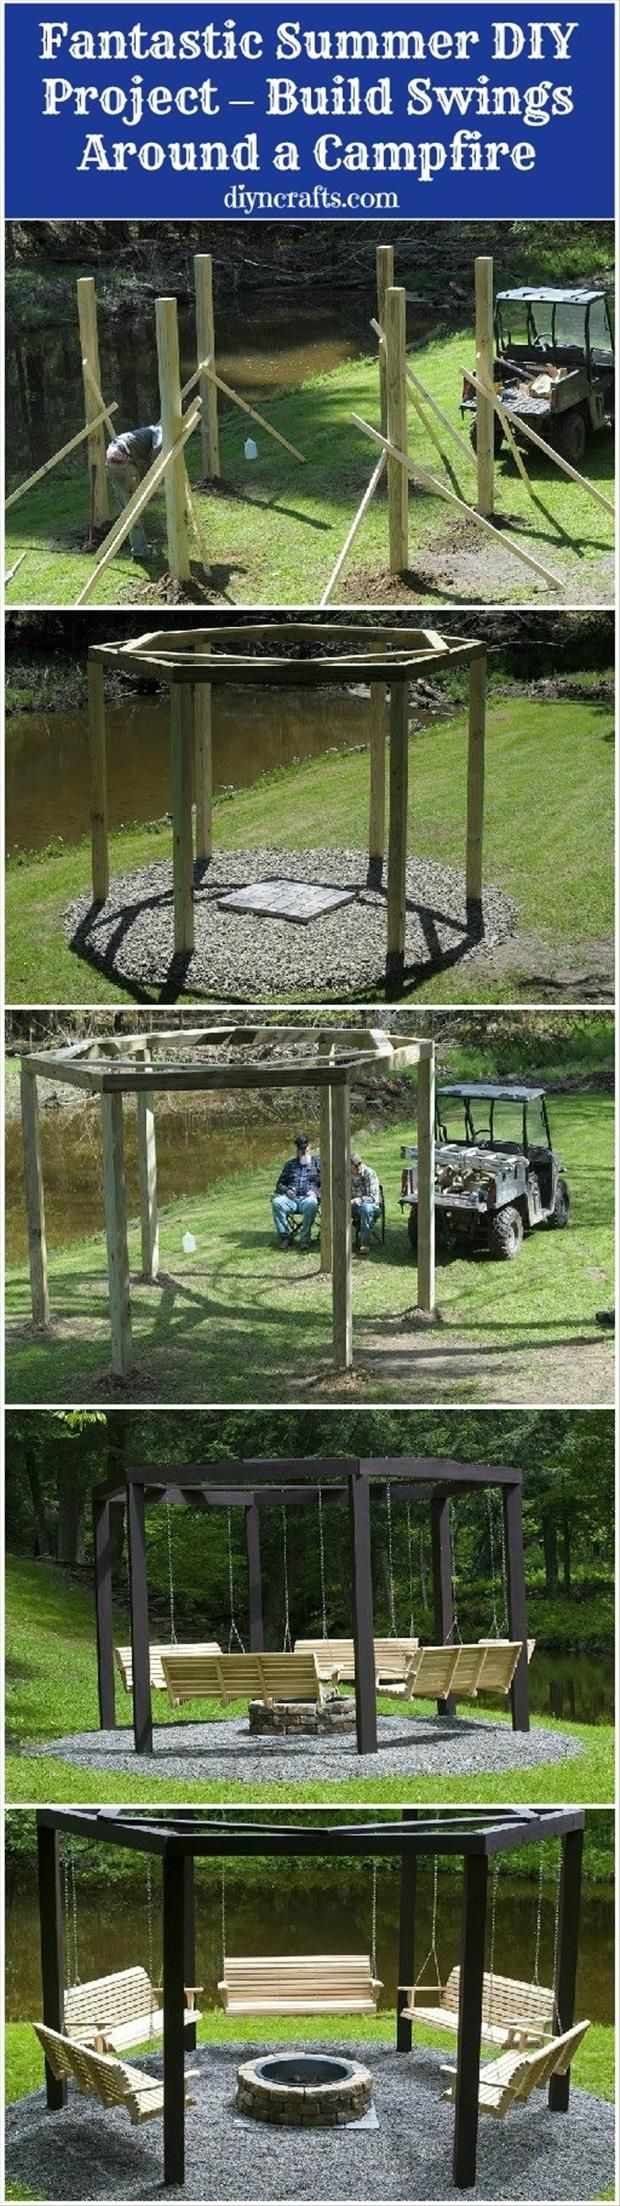 I think I found a project for us next summer:)